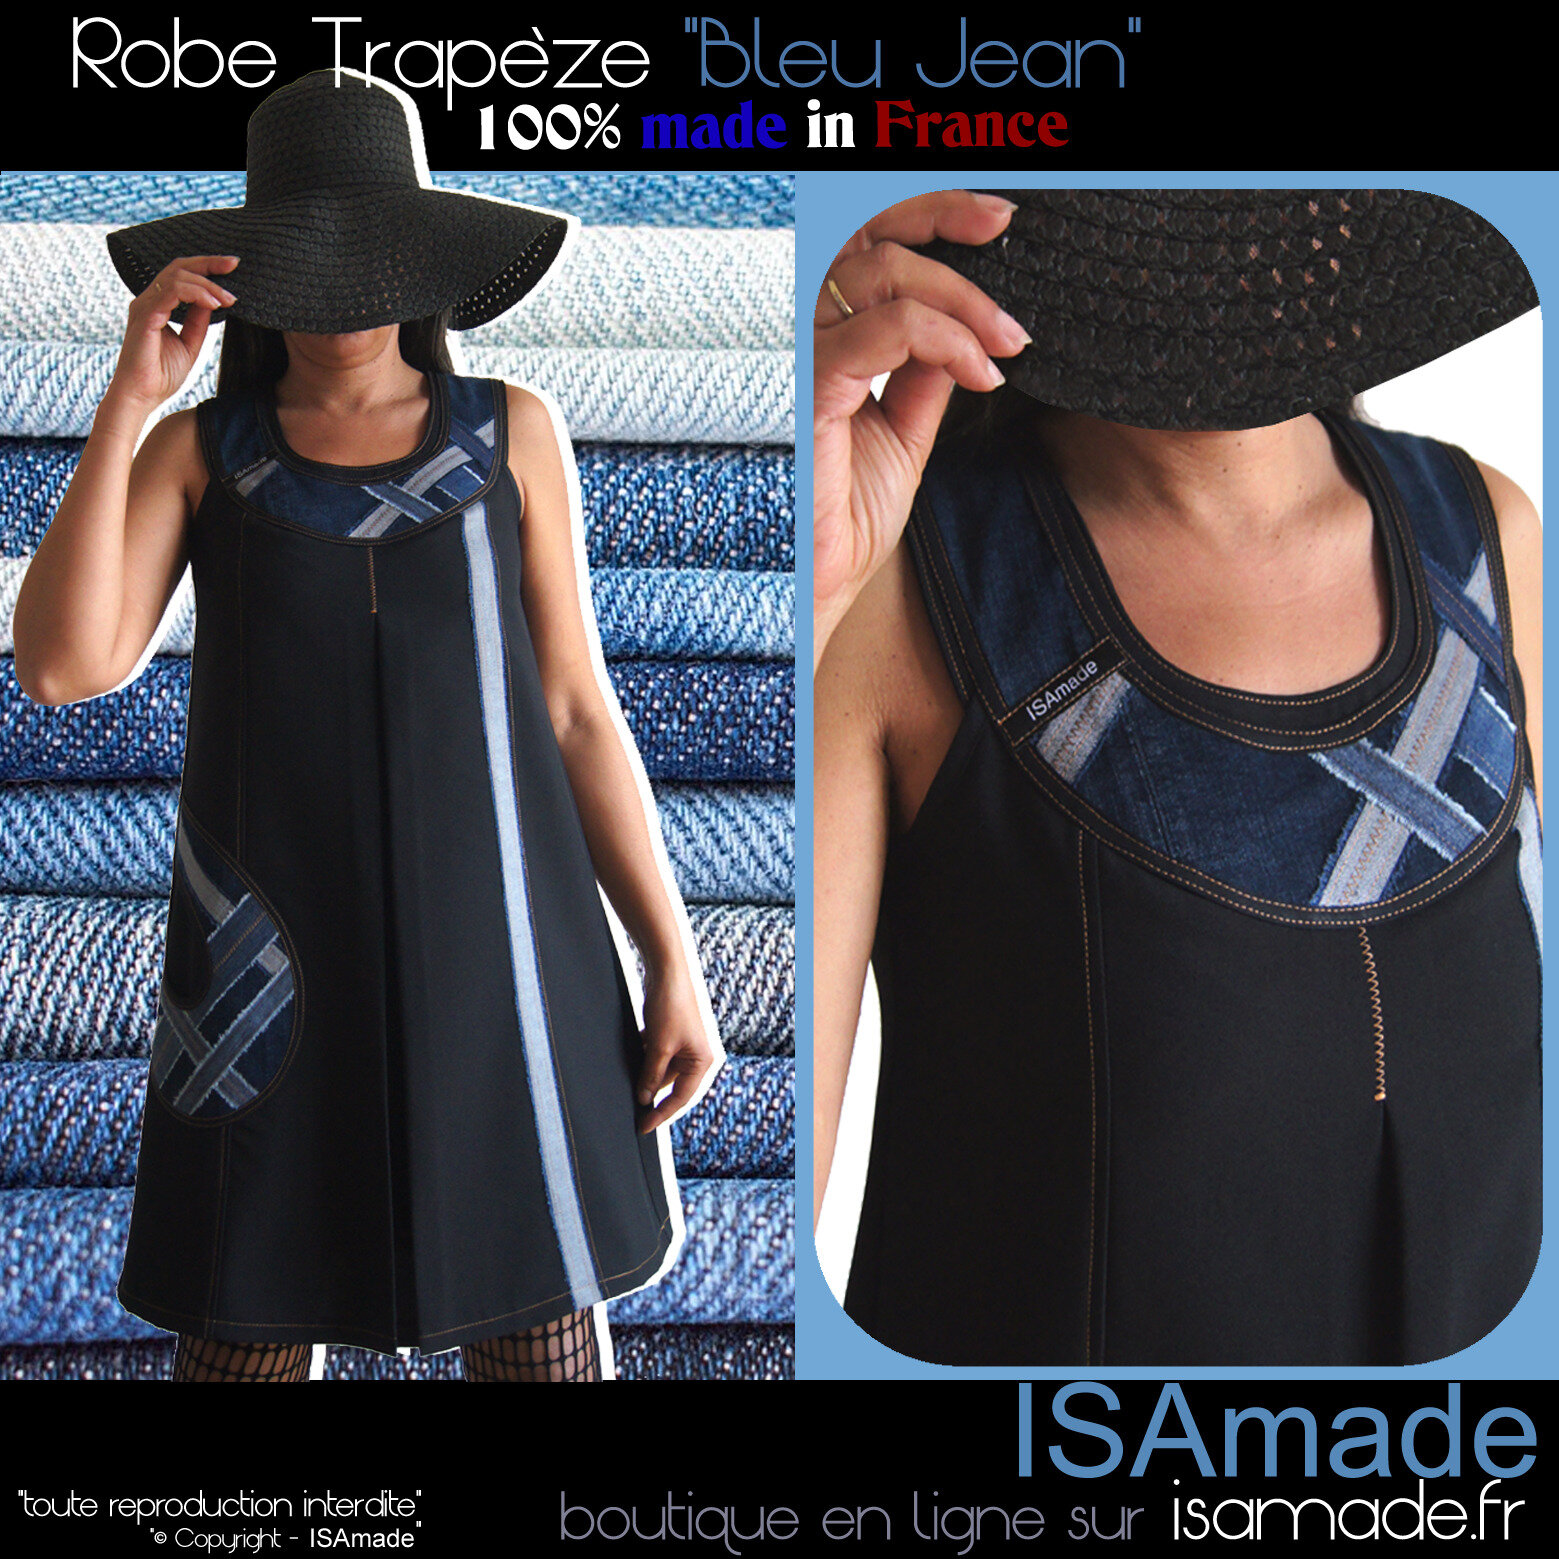 Robe made in france noire jean